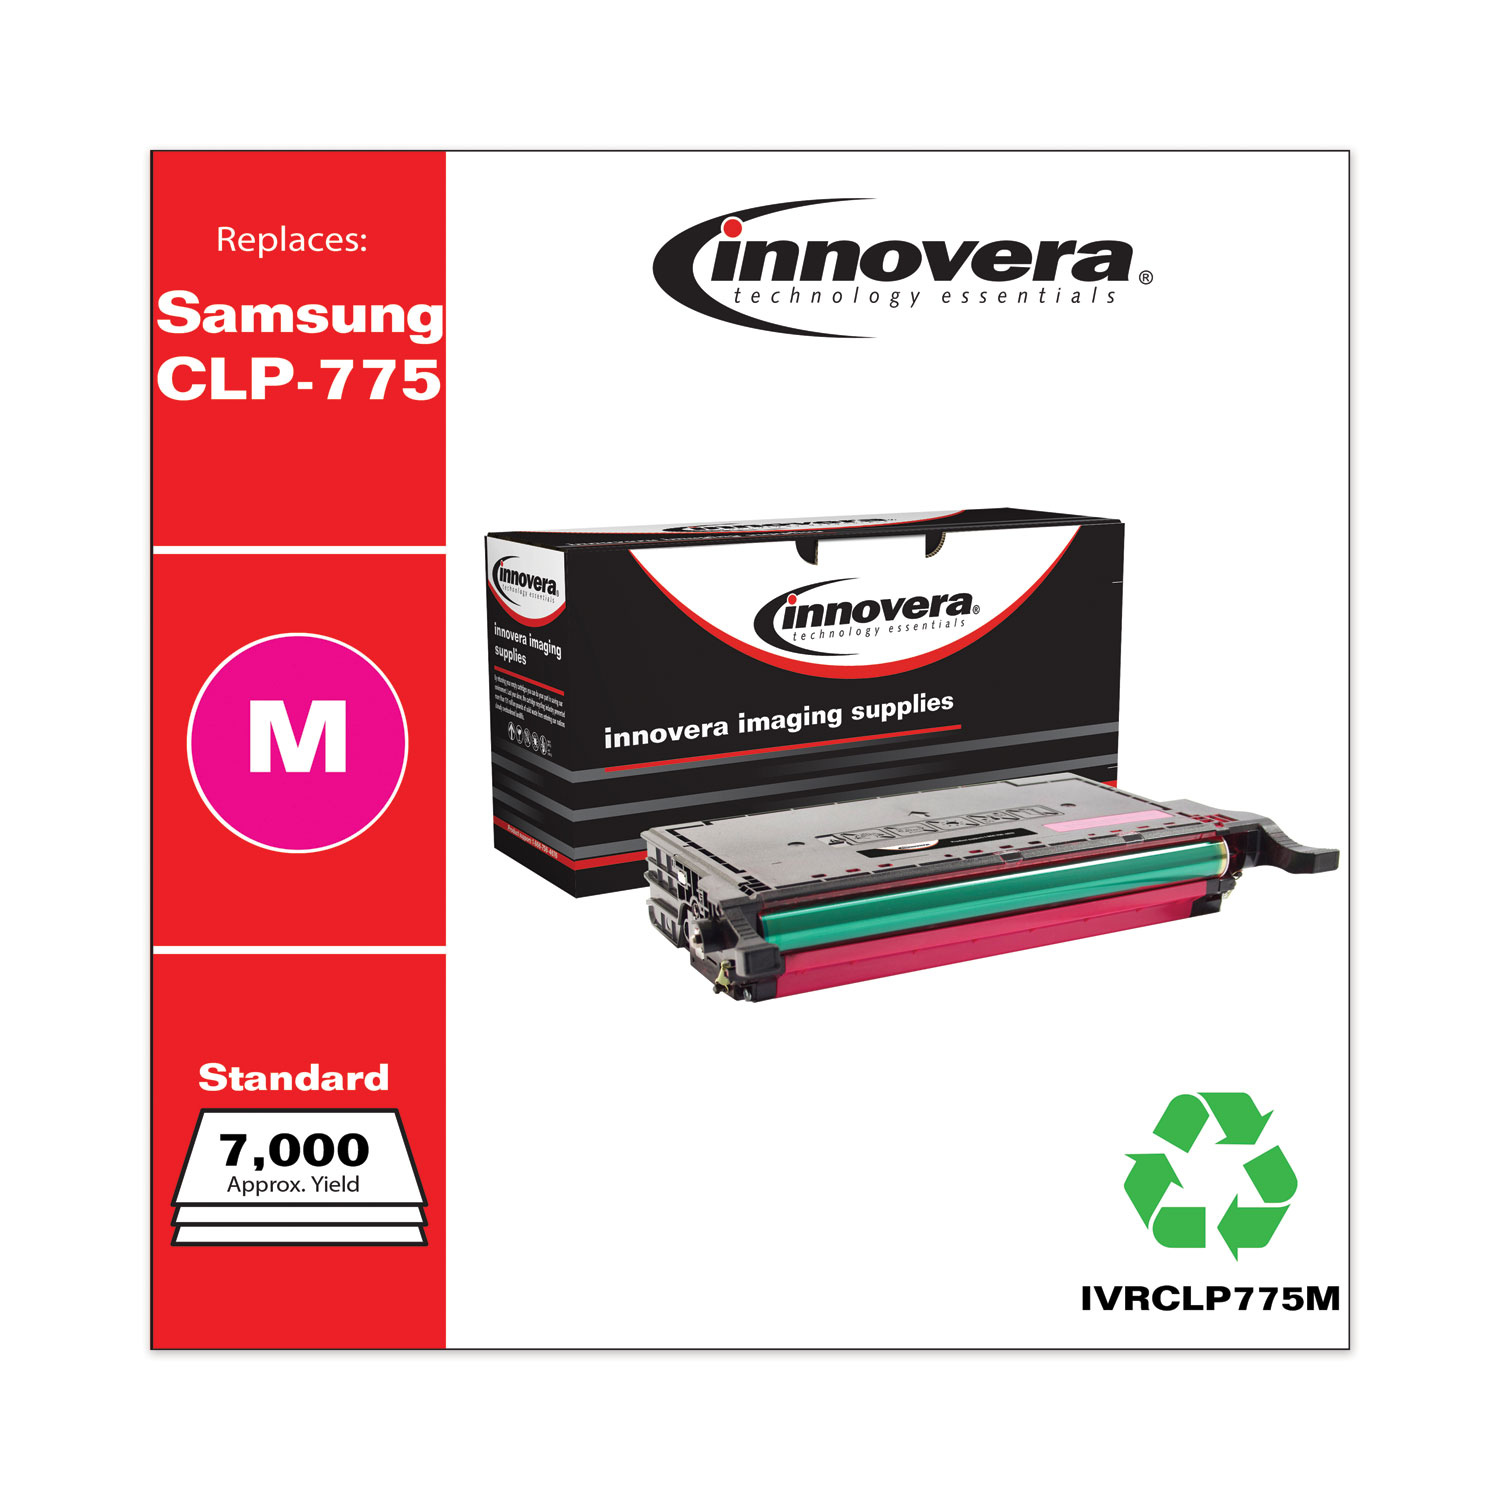 Remanufactured Magenta Toner, Replacement for Samsung CLP-775 (CLT-M609S), 7,000 Page-Yield IVRCLP775M